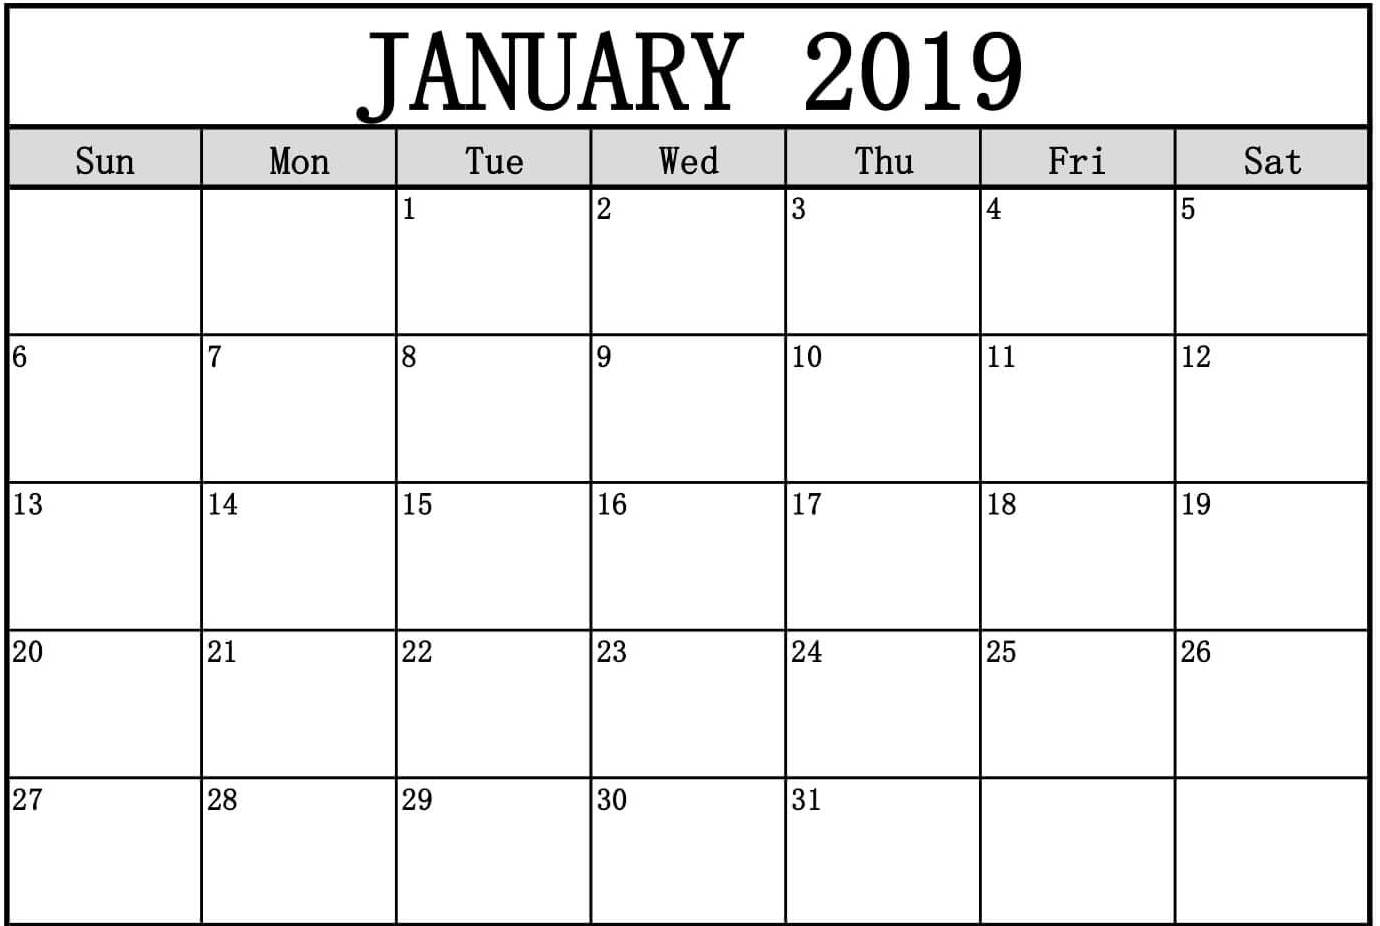 January 2019 Calendar Excel With Notes